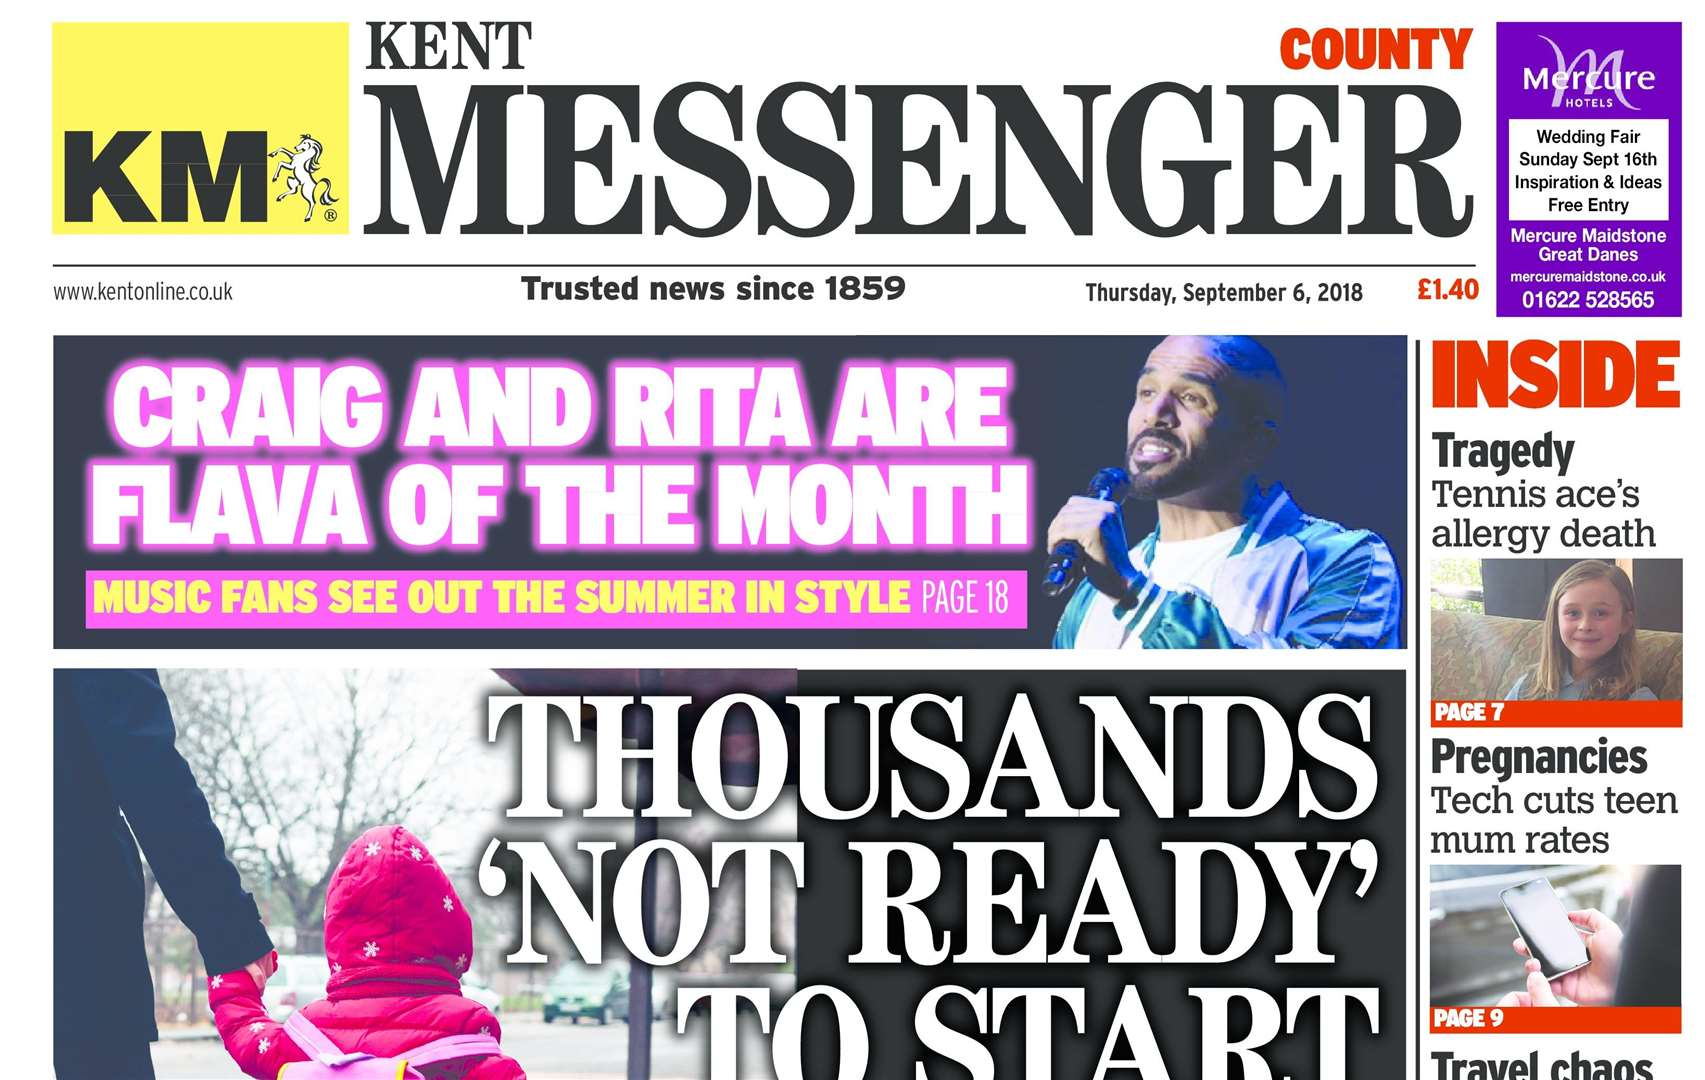 The first edition of the county edition of the Kent Messenger is available now